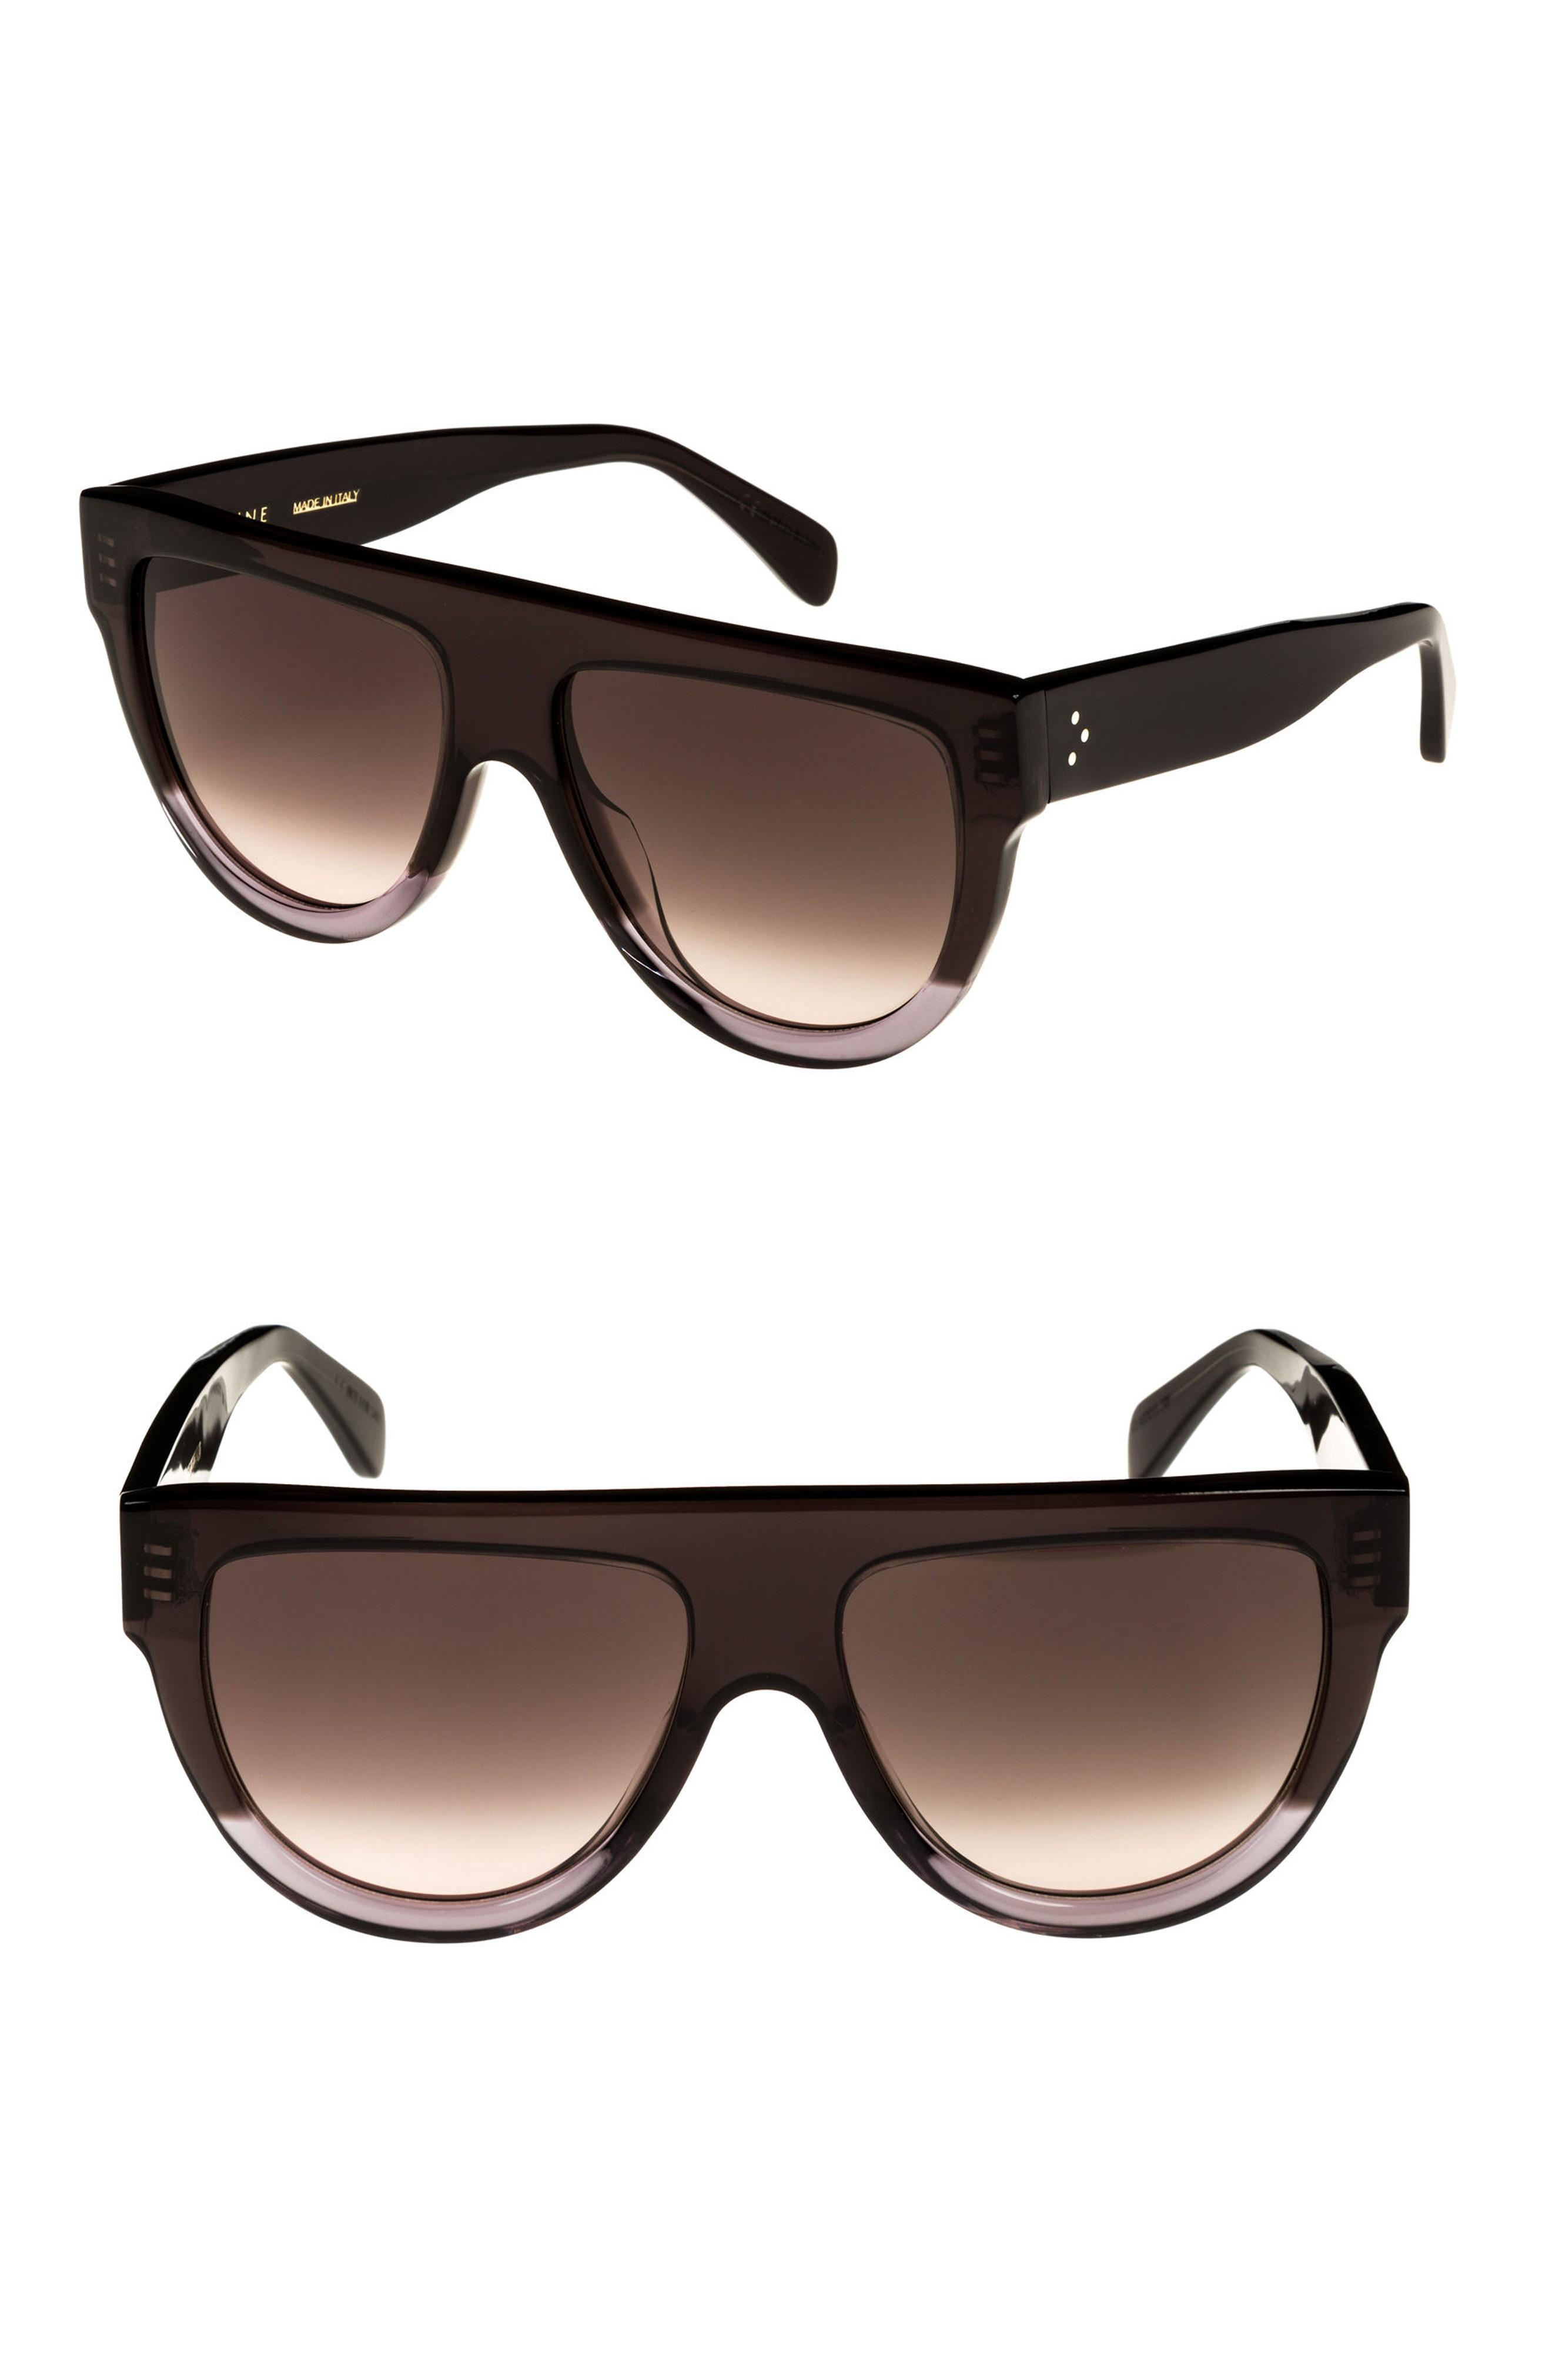 236a5400905c Celine Special Fit 60Mm Flat Top Sunglasses - Dark Grey Brown